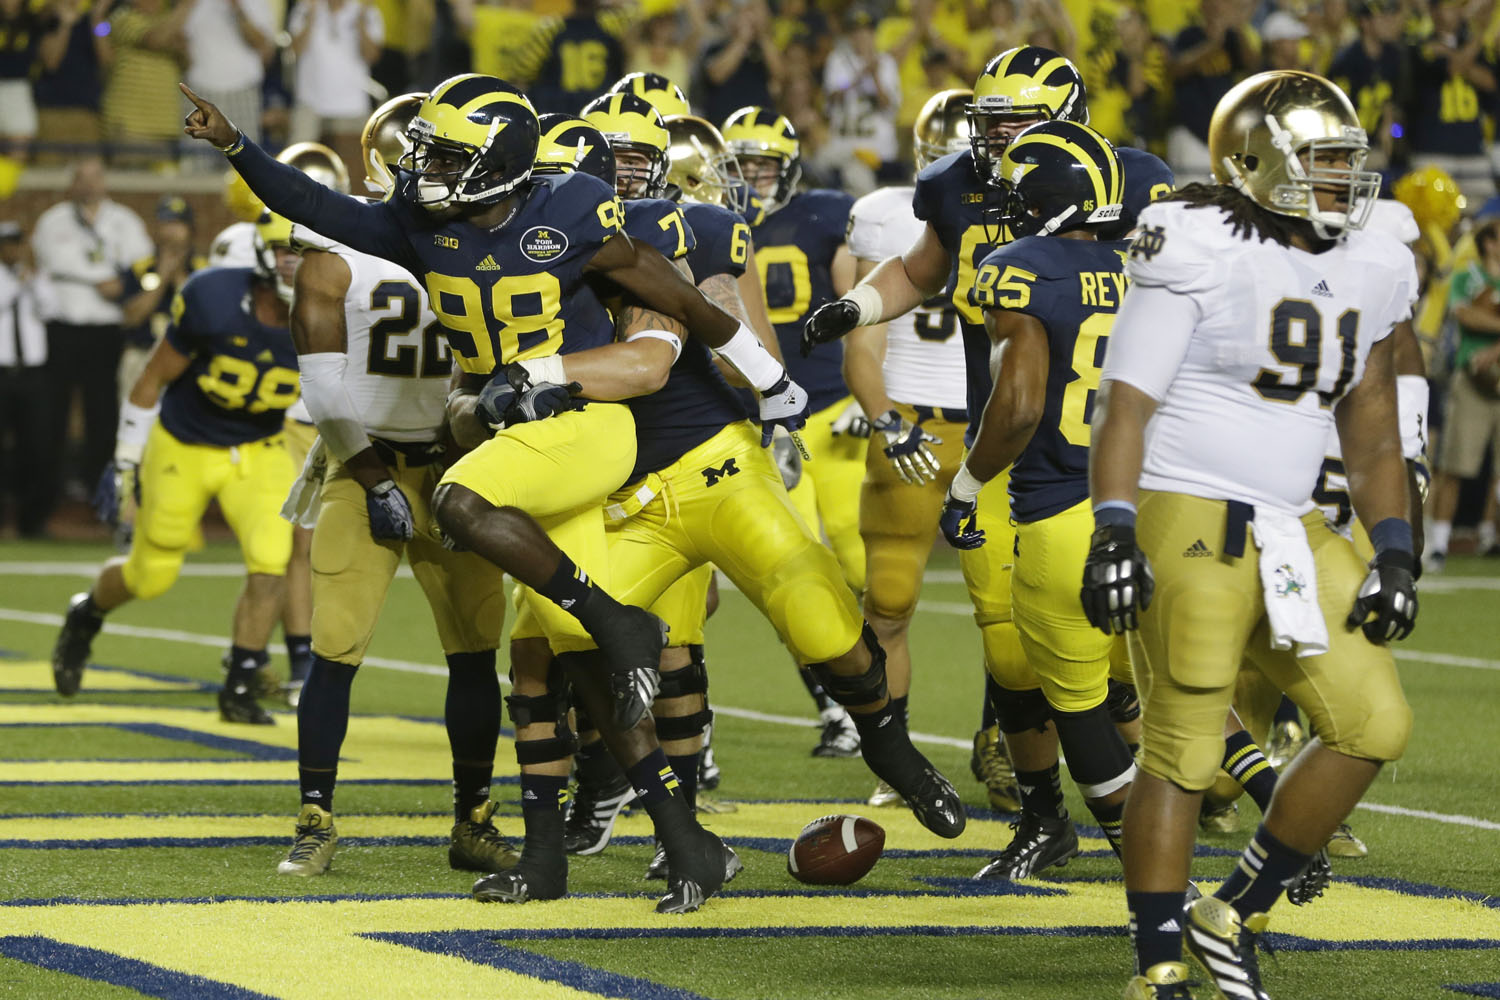 Michigan quarterback Devin Gardner (98) celebrates his touchdown in a 41-30 win over Notre Dame in Ann Arbor, Mich. (AP Photo/Carlos Osorio)